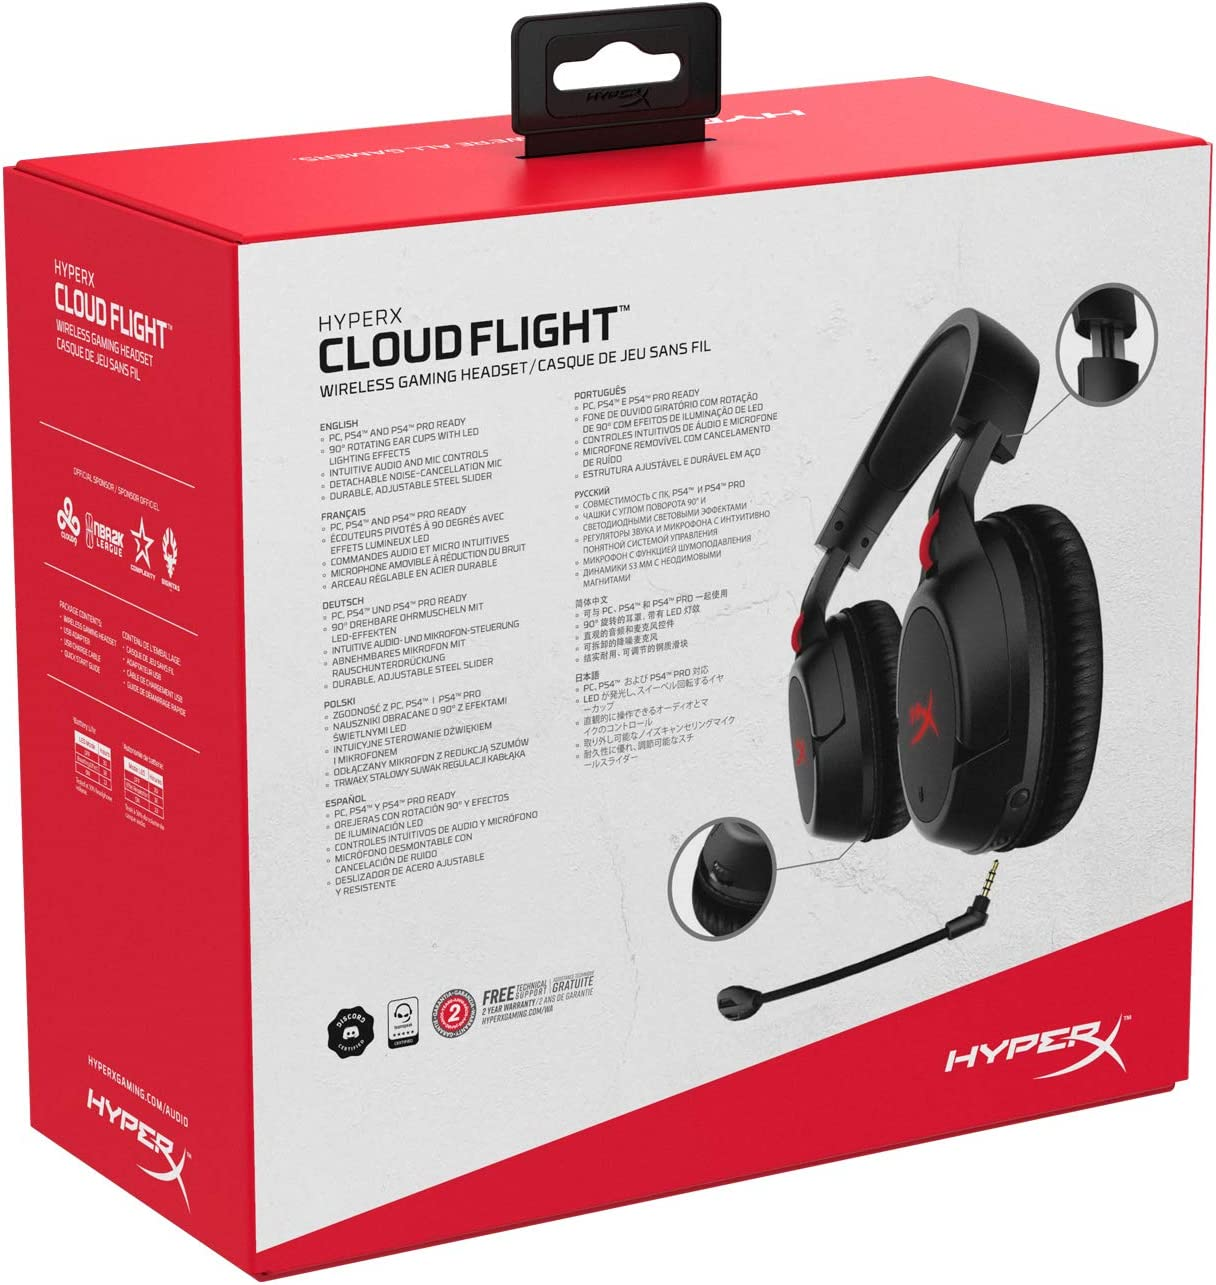 HyperX Cloud Flight Draadloze gaming headset, met lange